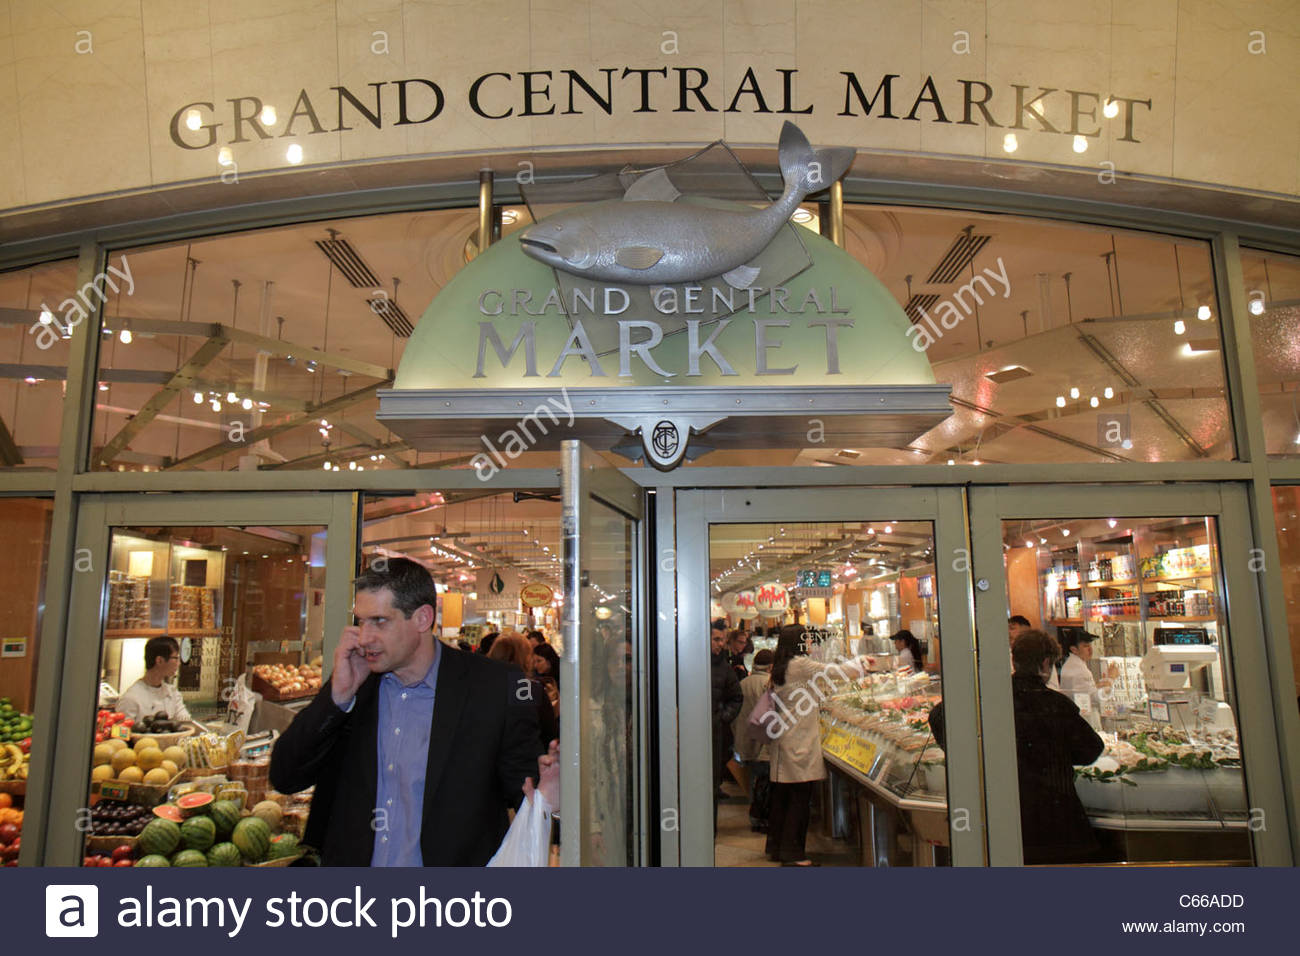 Manhattan New York City NYC NY Midtown 42nd Street Grand Central Station terminal train Grand Central Market shopping - Stock Image